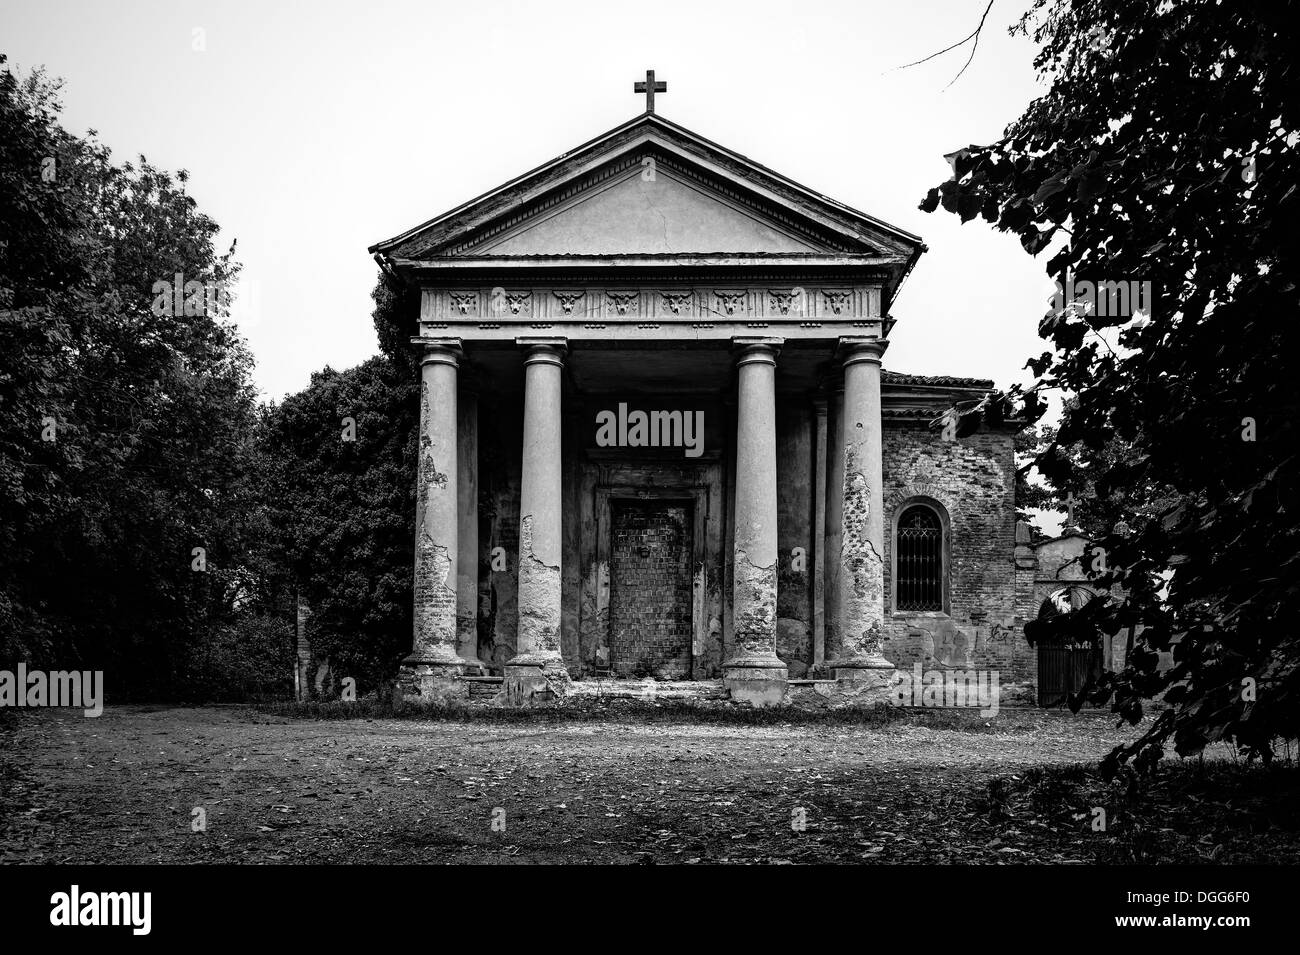 Italy. Abandoned church with walled-up door - Stock Image